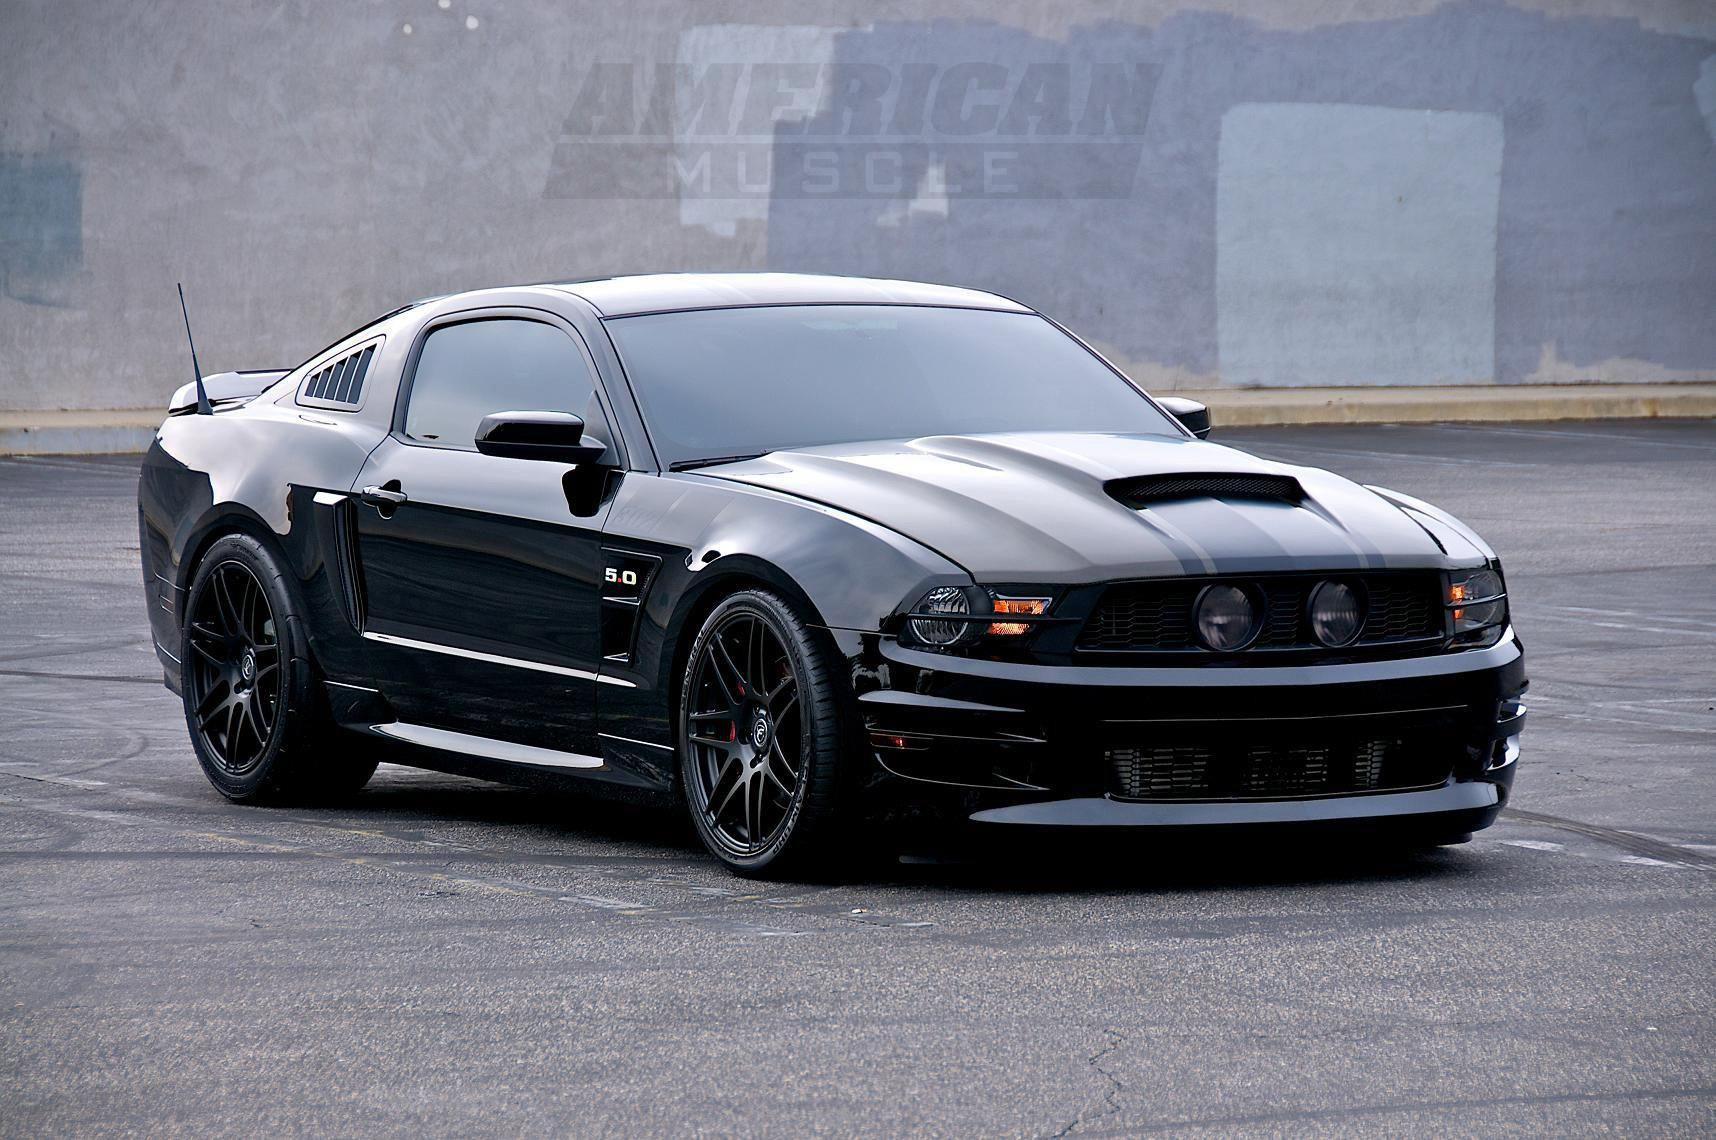 Ford Mustang Nice Clean Black Www Musclecarfuturefortune Com